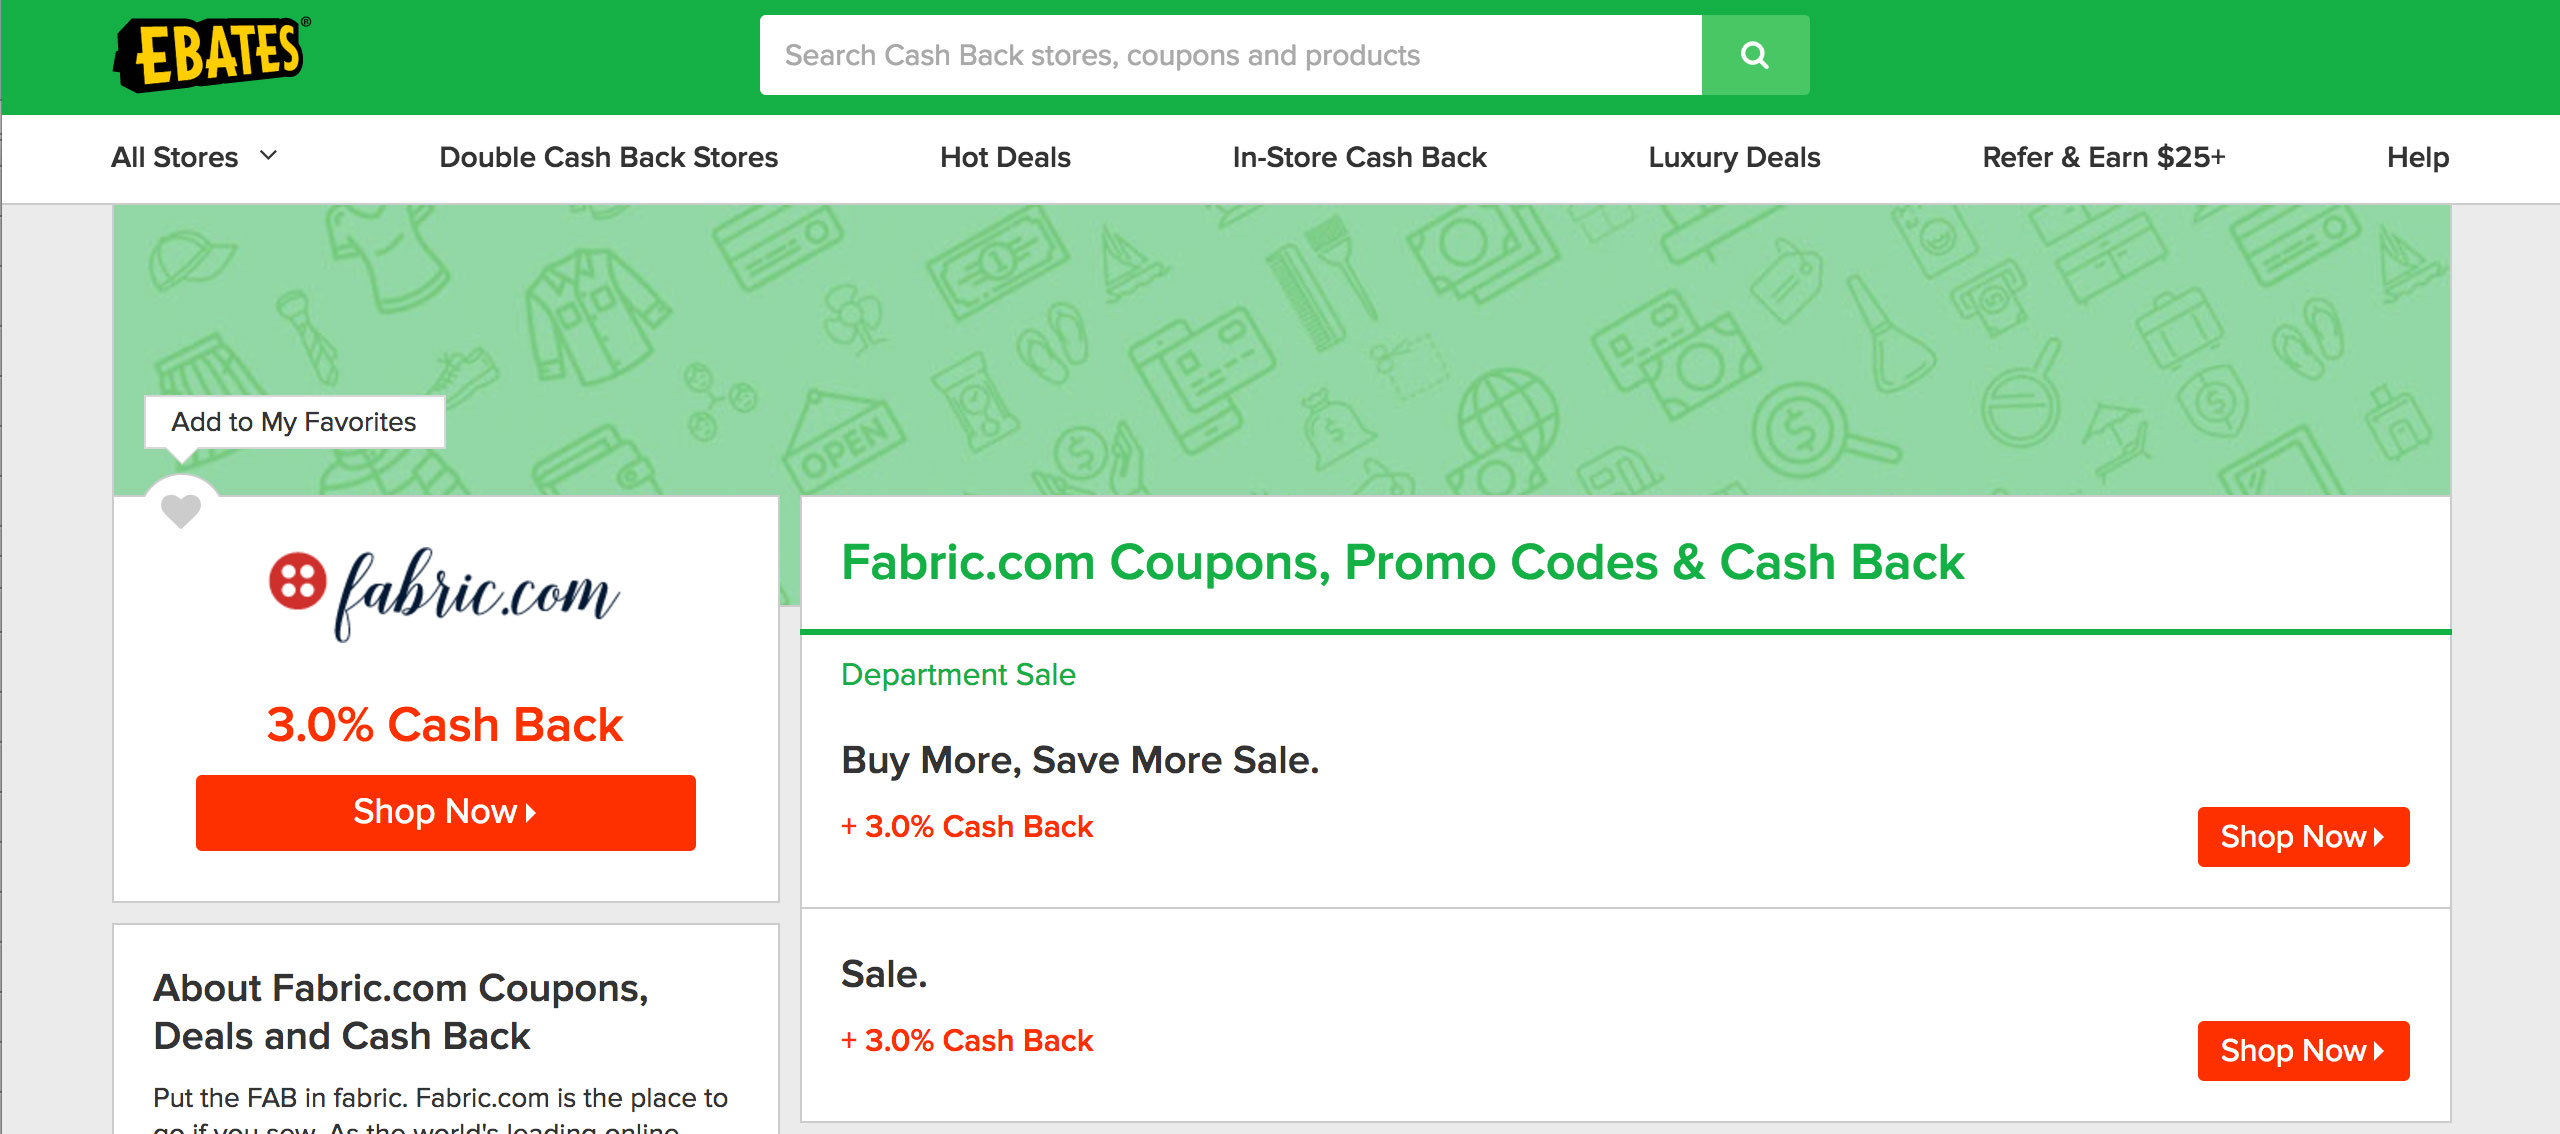 Mr Rebates Ebates Get Cash Back When You Buy Fabric Online